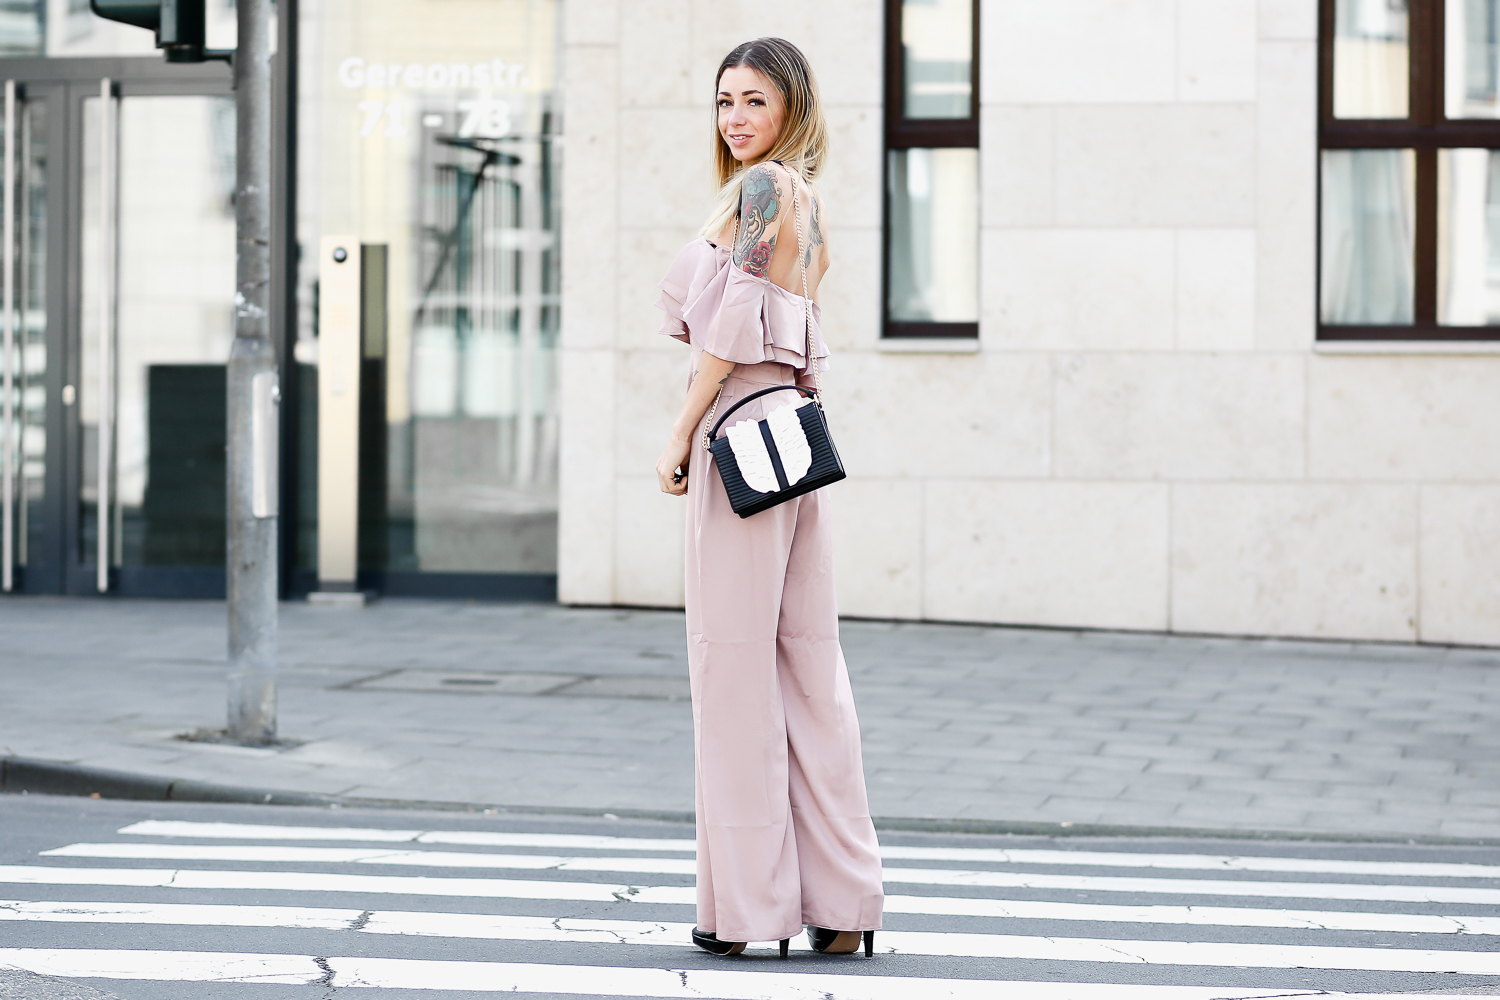 blog-outfit-jumpsuit-moschino-bag-koeln-minamia-ootd